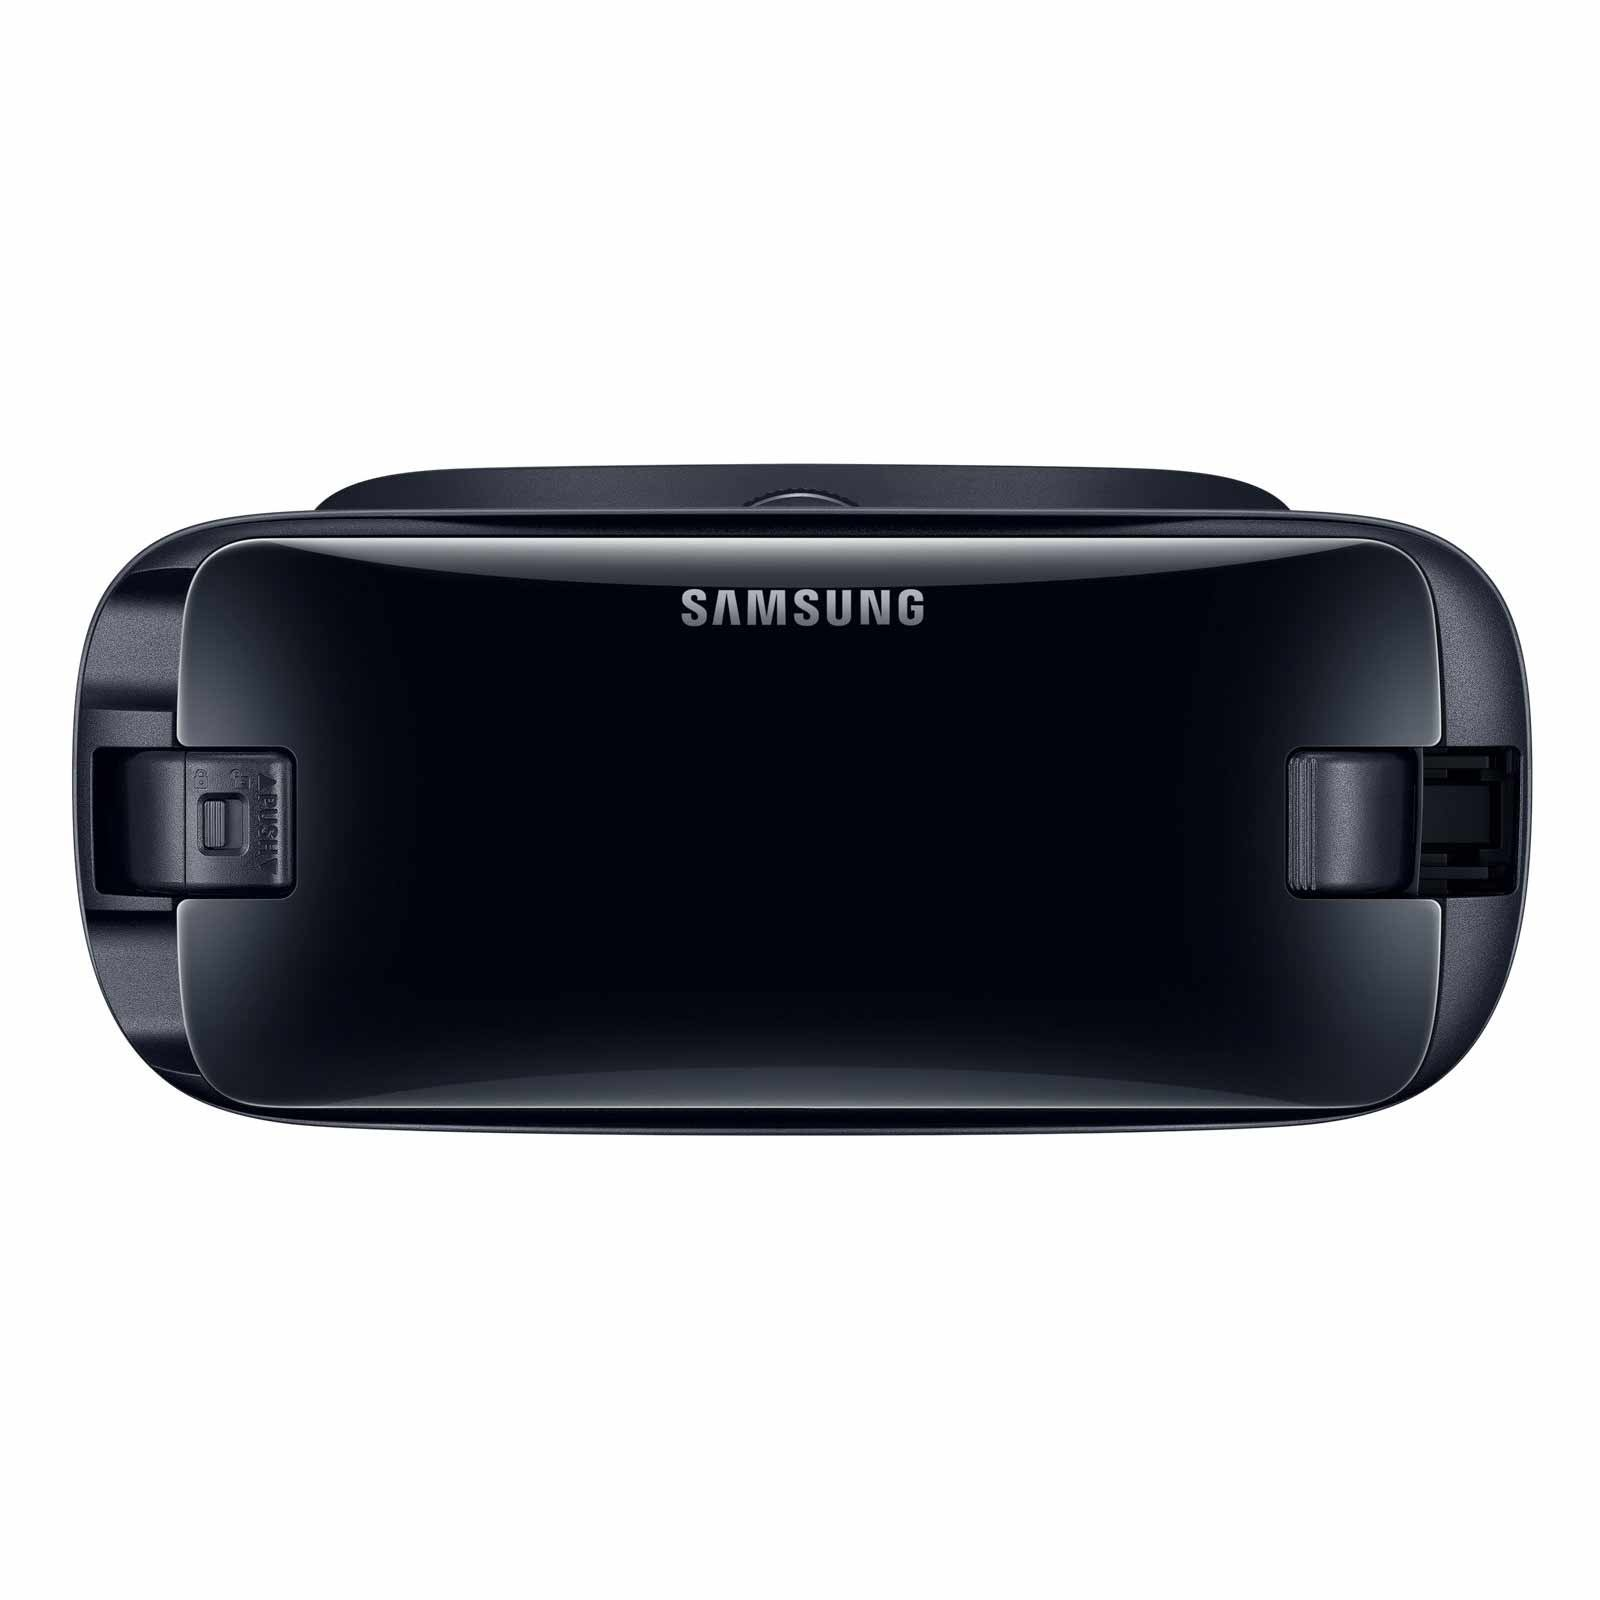 Samsung Gear VR (2017 Edition) with Controller Virtual Reality Headset SM-R325 for Galaxy S8, S8+, S7, S7 edge, Note5, Note 8, S6 edge+, S6, S6 edge (International Version, No Warranty) by Samsung (Image #9)